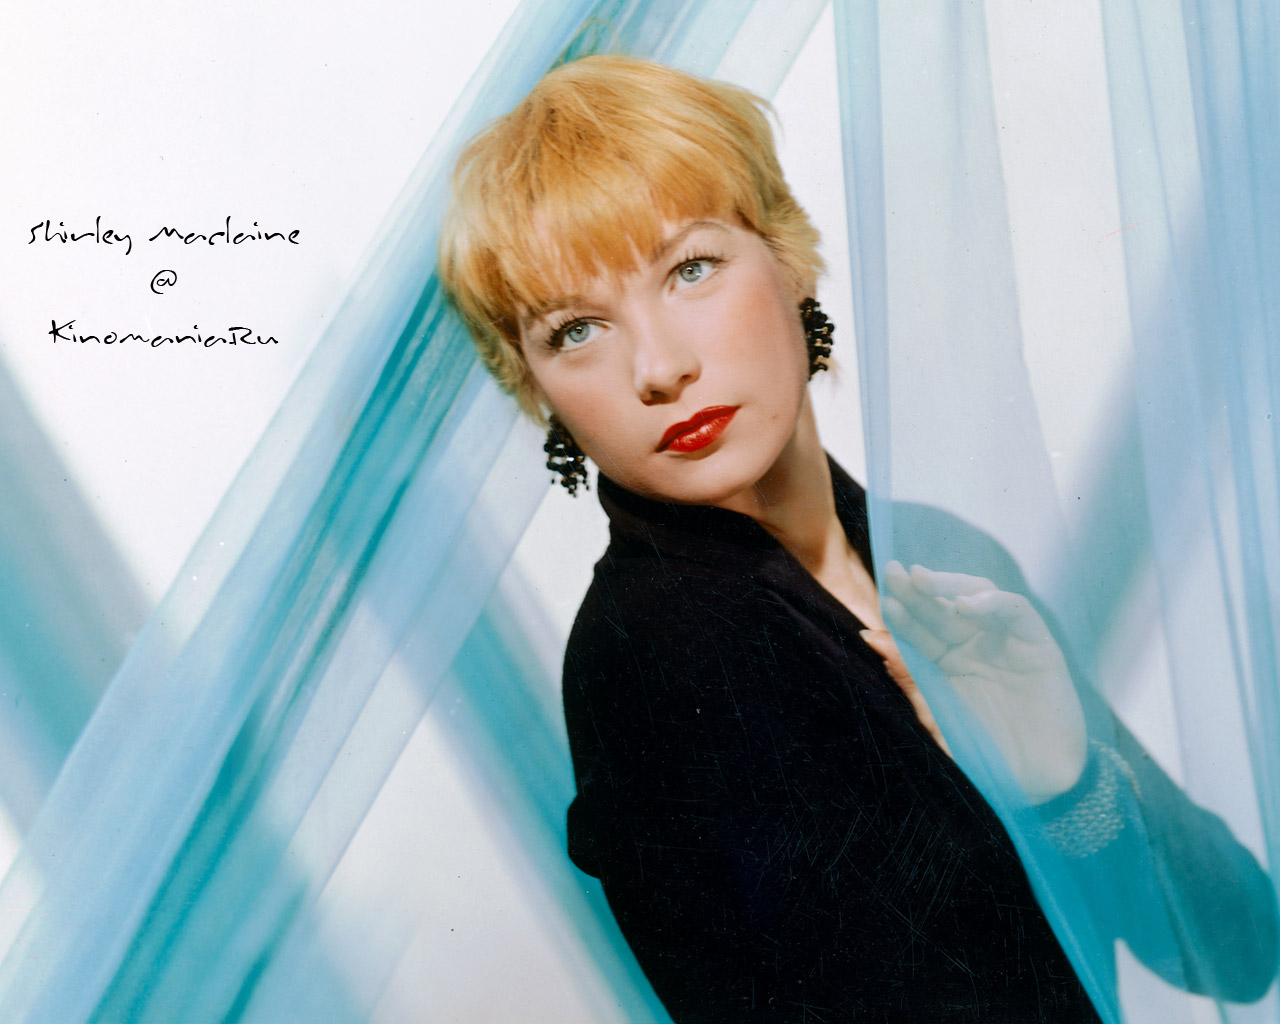 Shirley maclaine actress photos